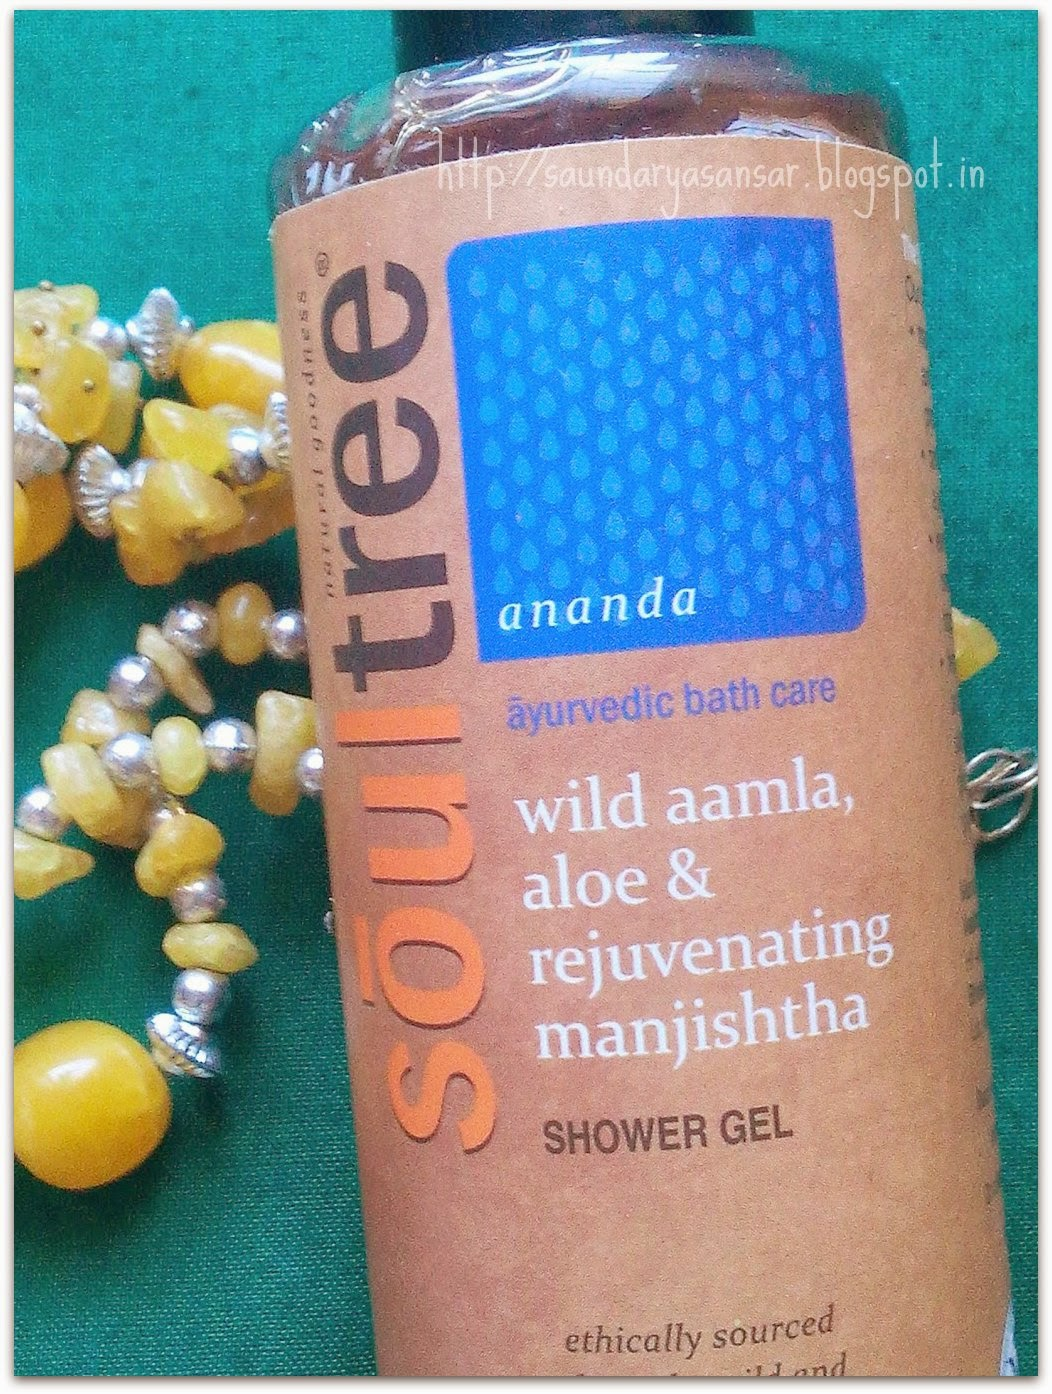 Soultree Wild Amla, Aloe & Rejuvenating manjishtha Shower Gel- Review